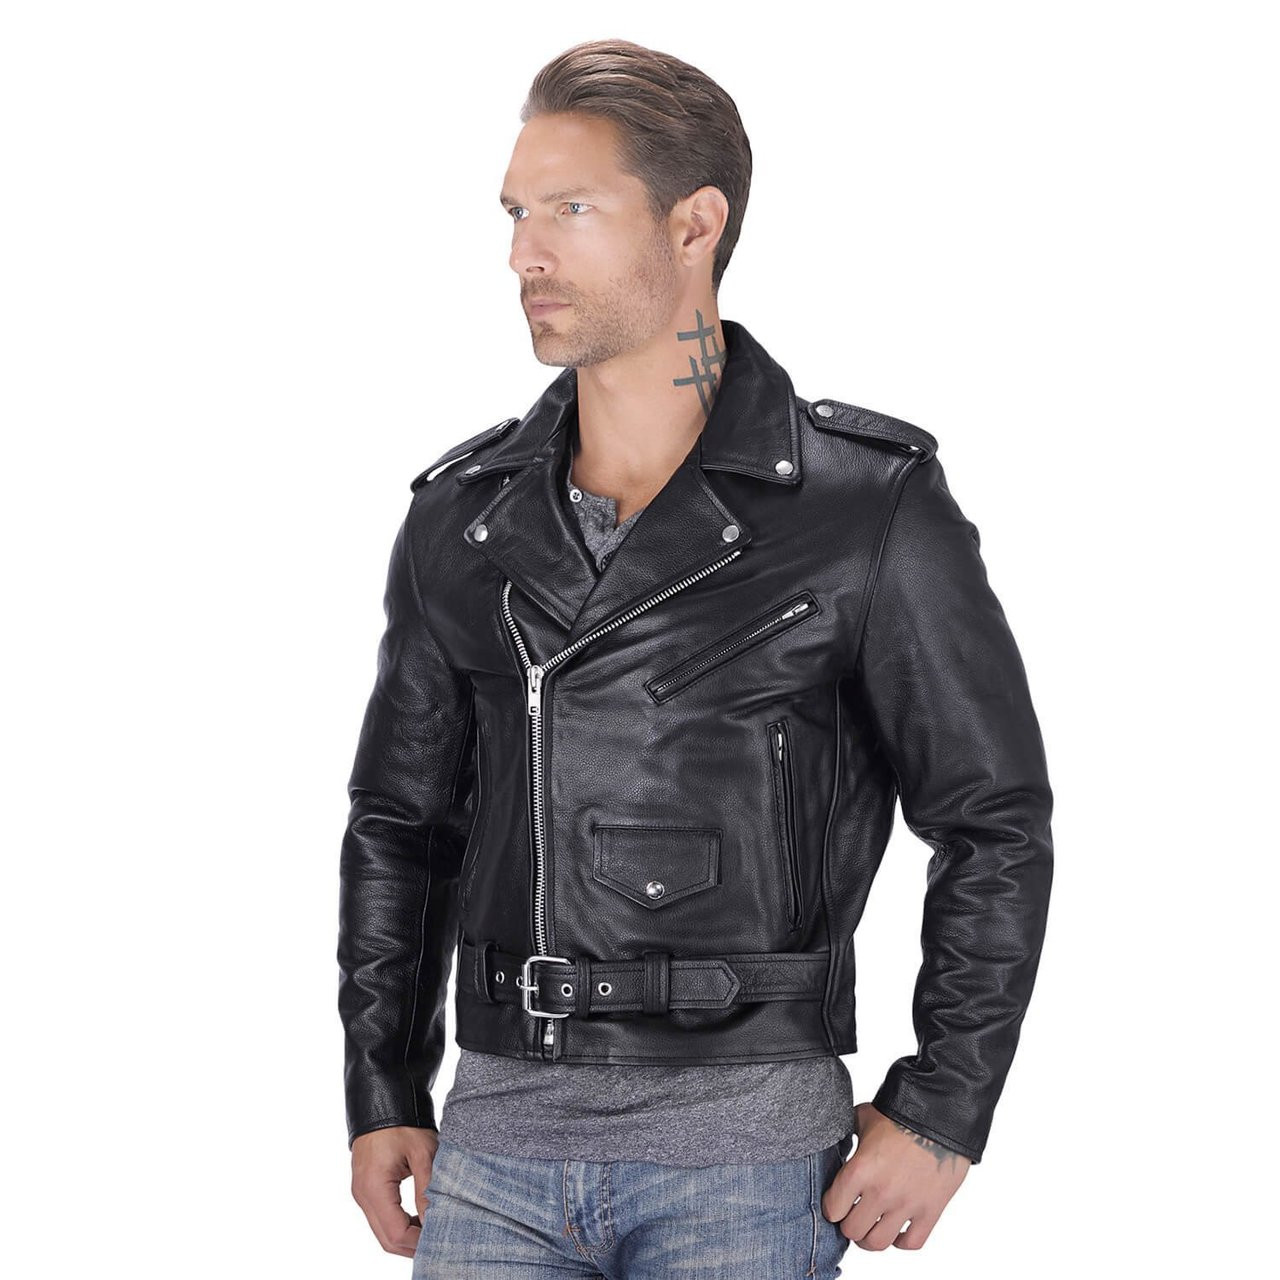 c735a0dff04eb Nomad USA Classic Leather Biker Jacket - Motorcycle House